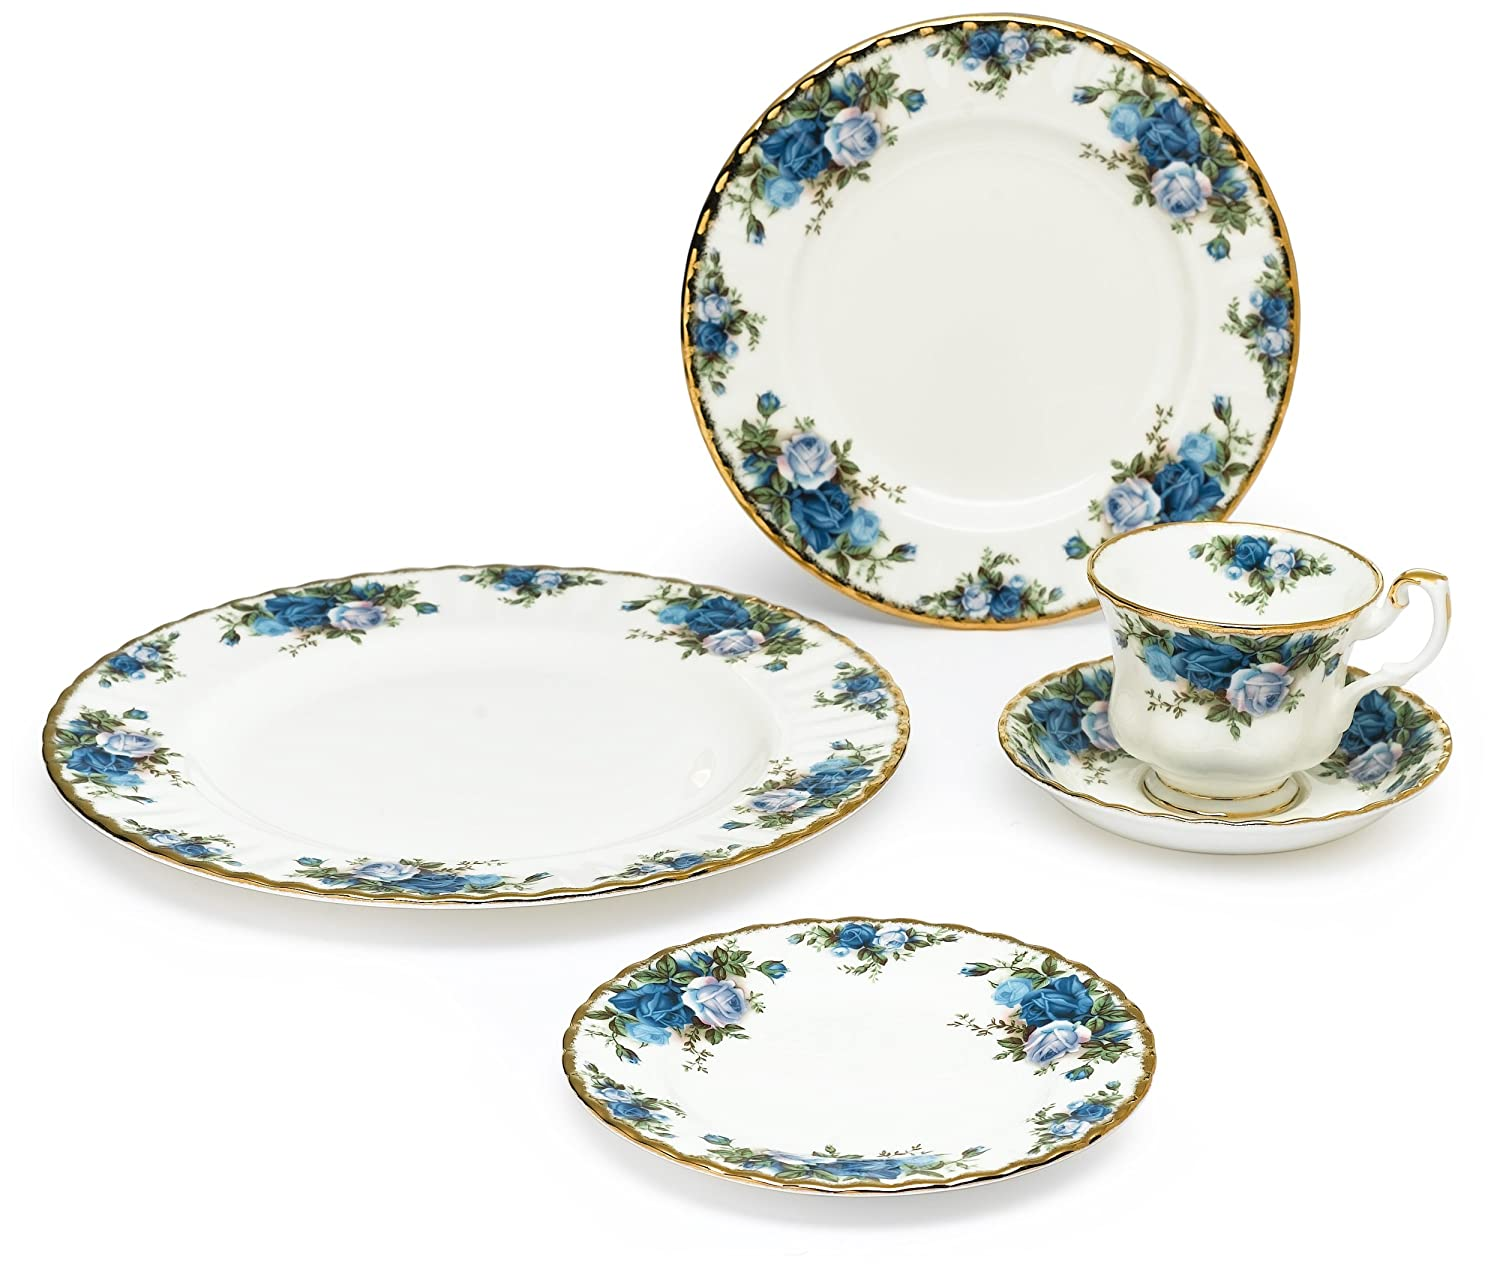 Royal Albert Moonlight Rose 5-Piece Place Setting, Service for 1 Royal Doulton 15185002